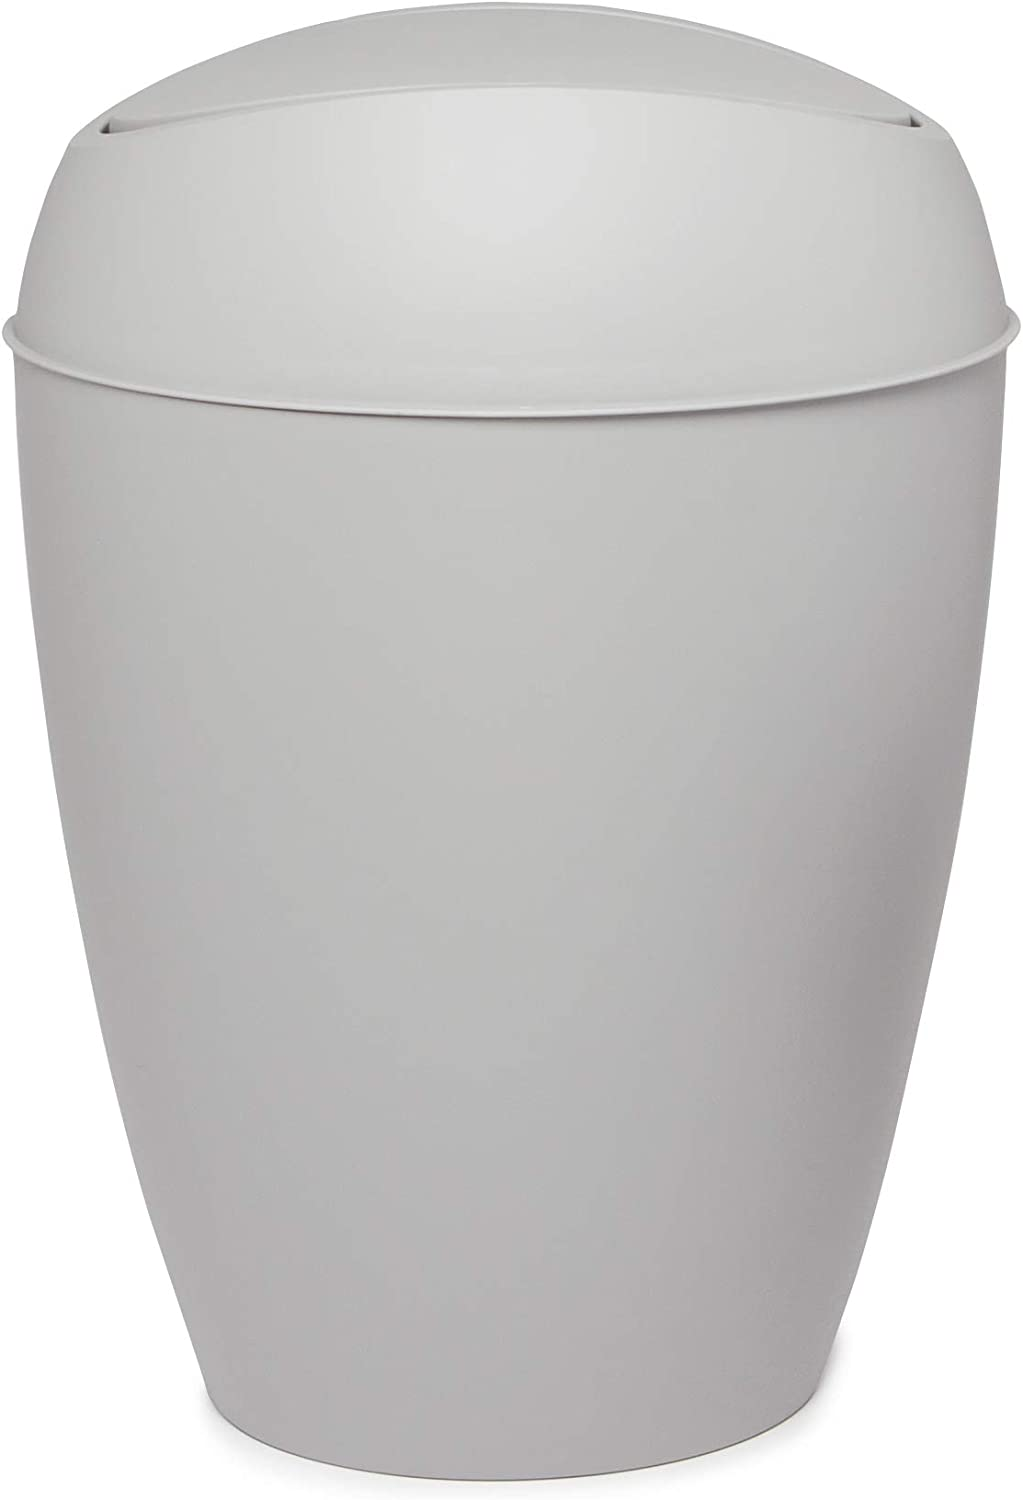 Trash Can with Swing-top Lid Shadow Gray 2.4 Gallon